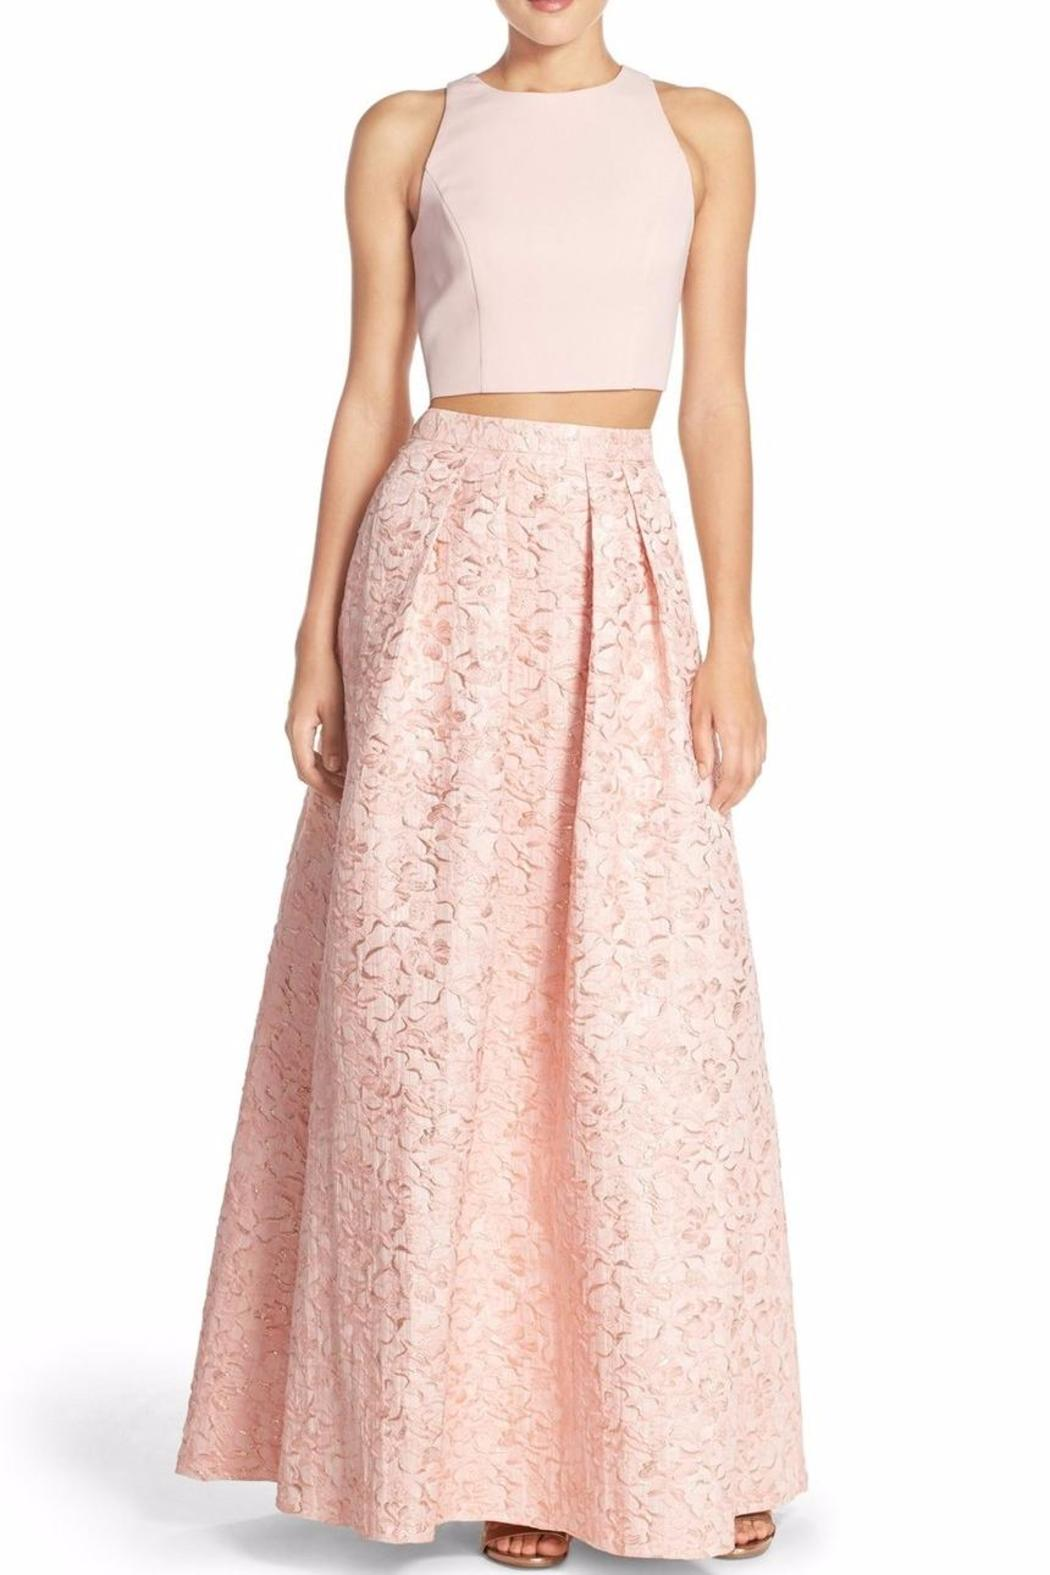 Aidan by Aidan Mattox Floral 2 Piece Ball Gown from New Jersey by ...